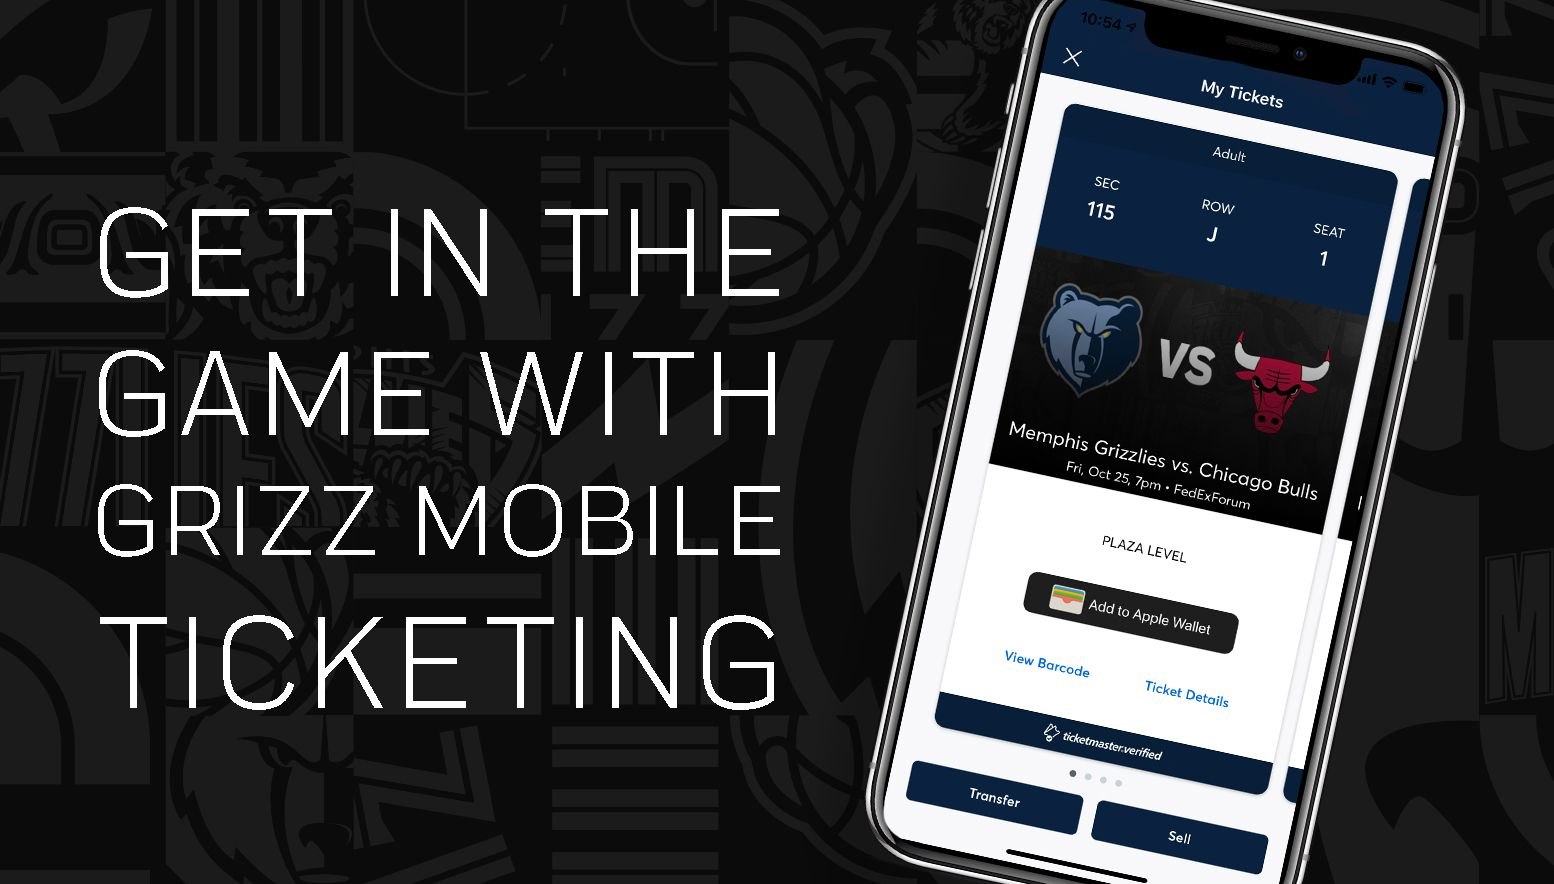 Grizzlies Mobile Tickets